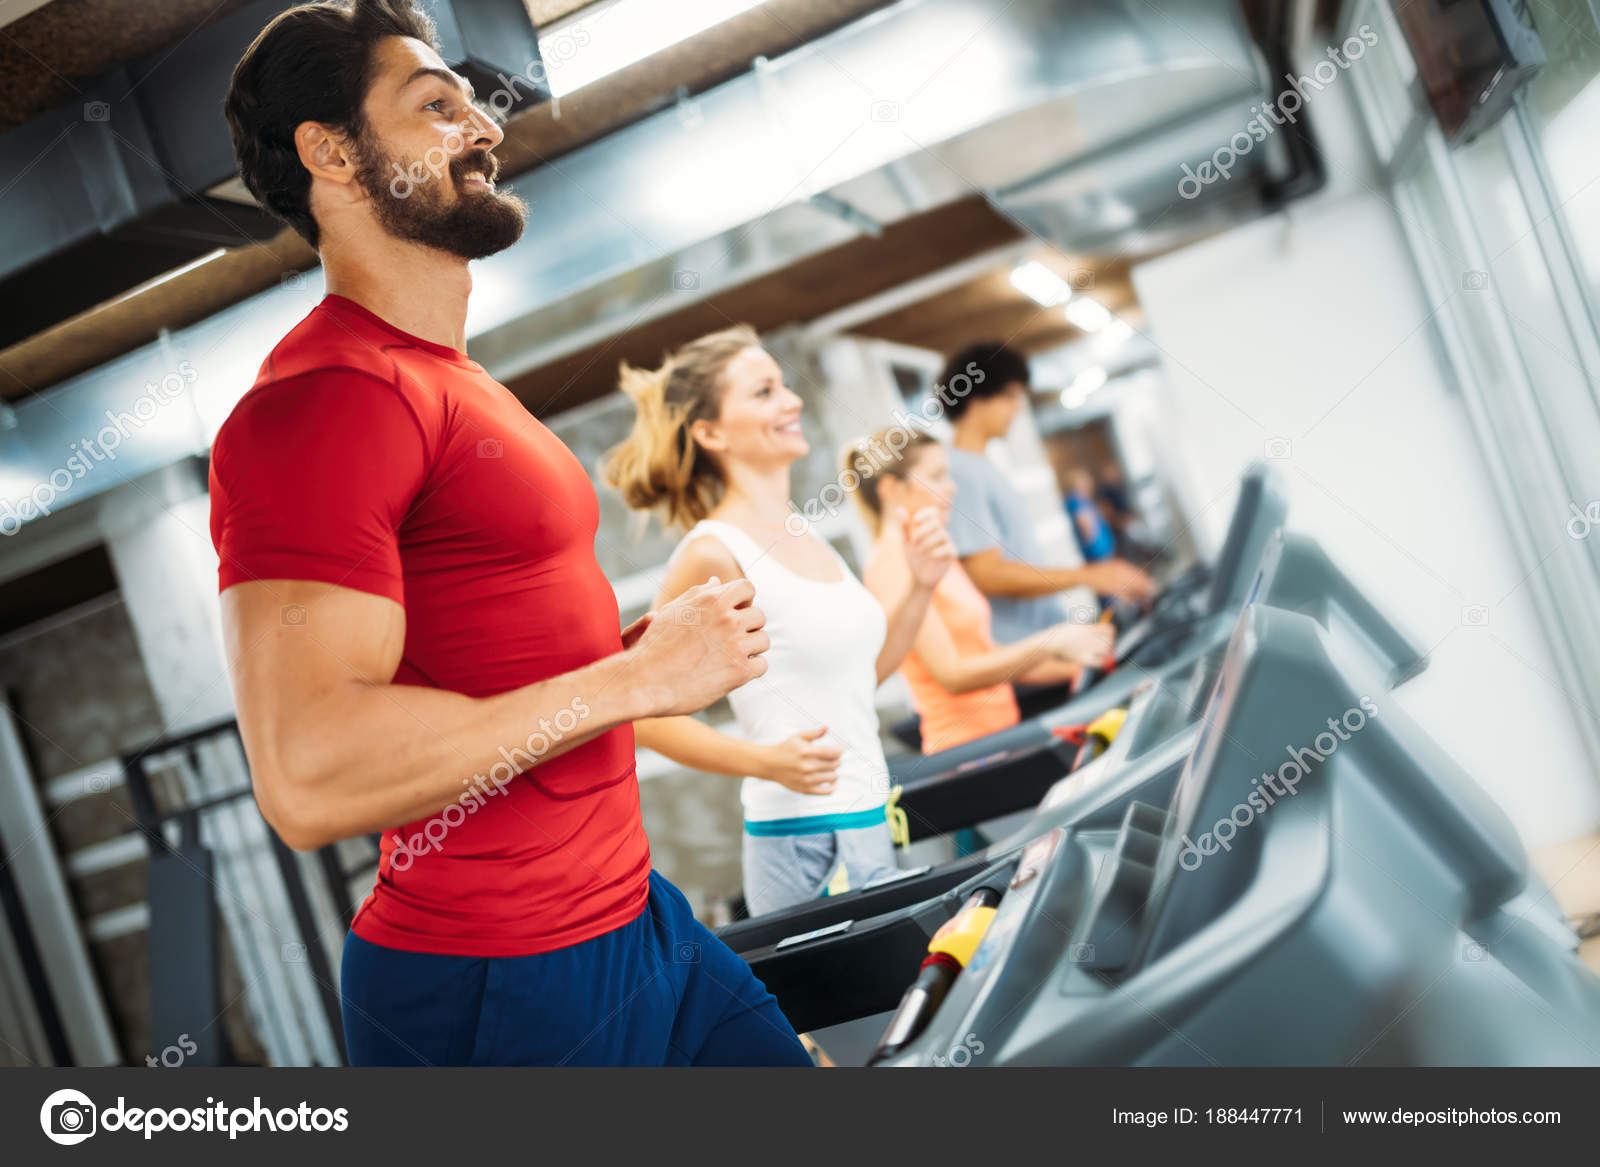 Young Handsome Man Doing Cardio Training Treadmill Gym Stock Photo